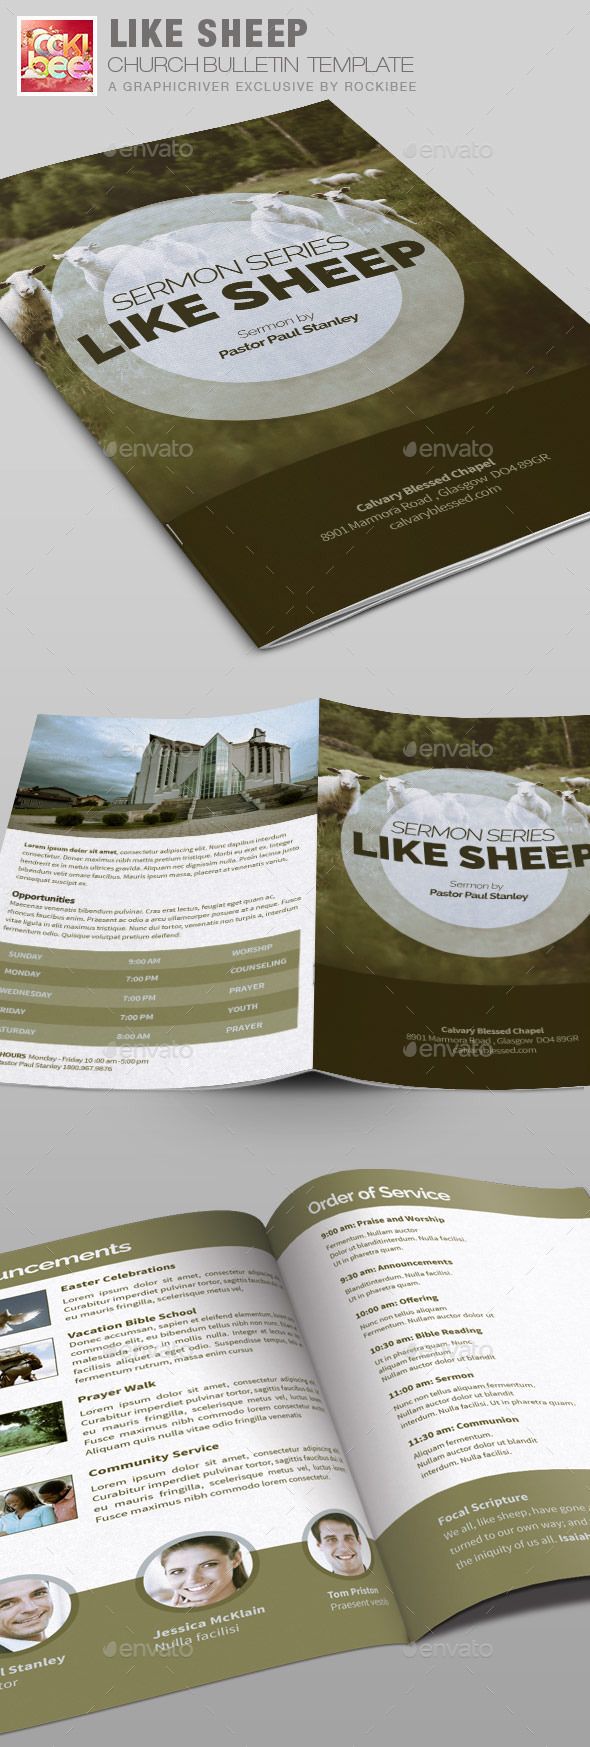 GraphicRiver Like Sheep Church Bulletin Template 10265476